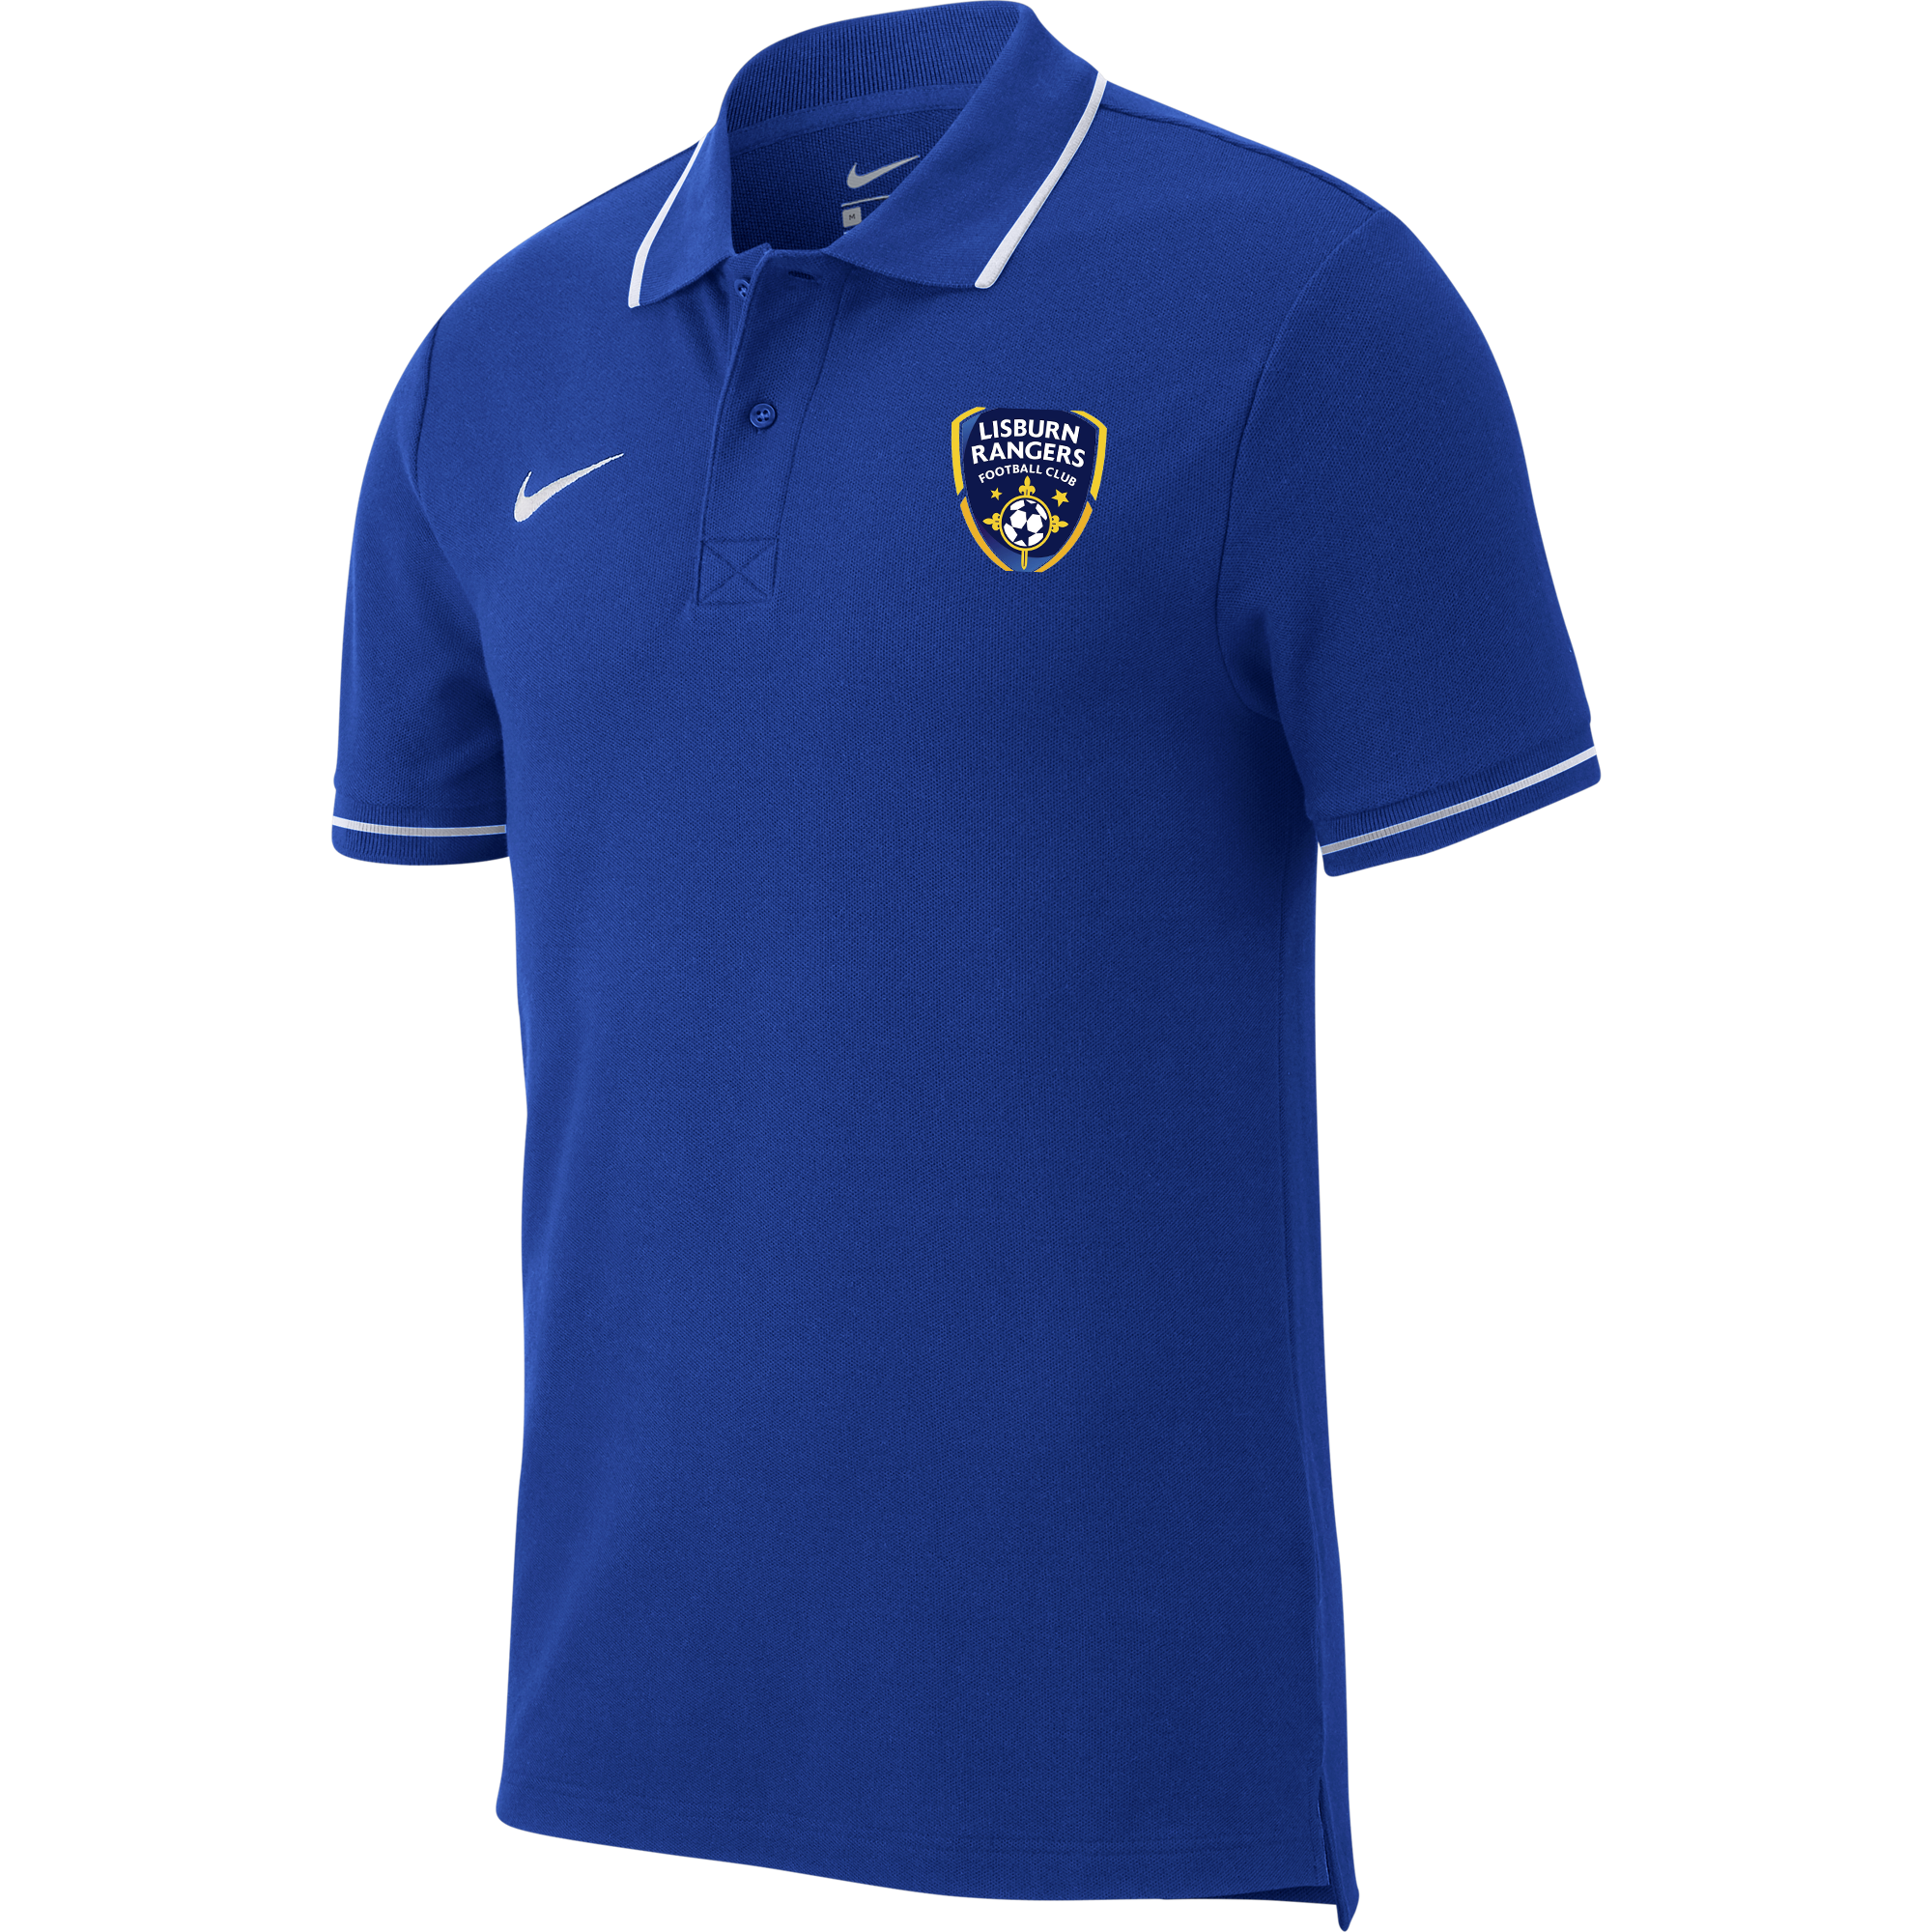 Lisburn rangers club polo